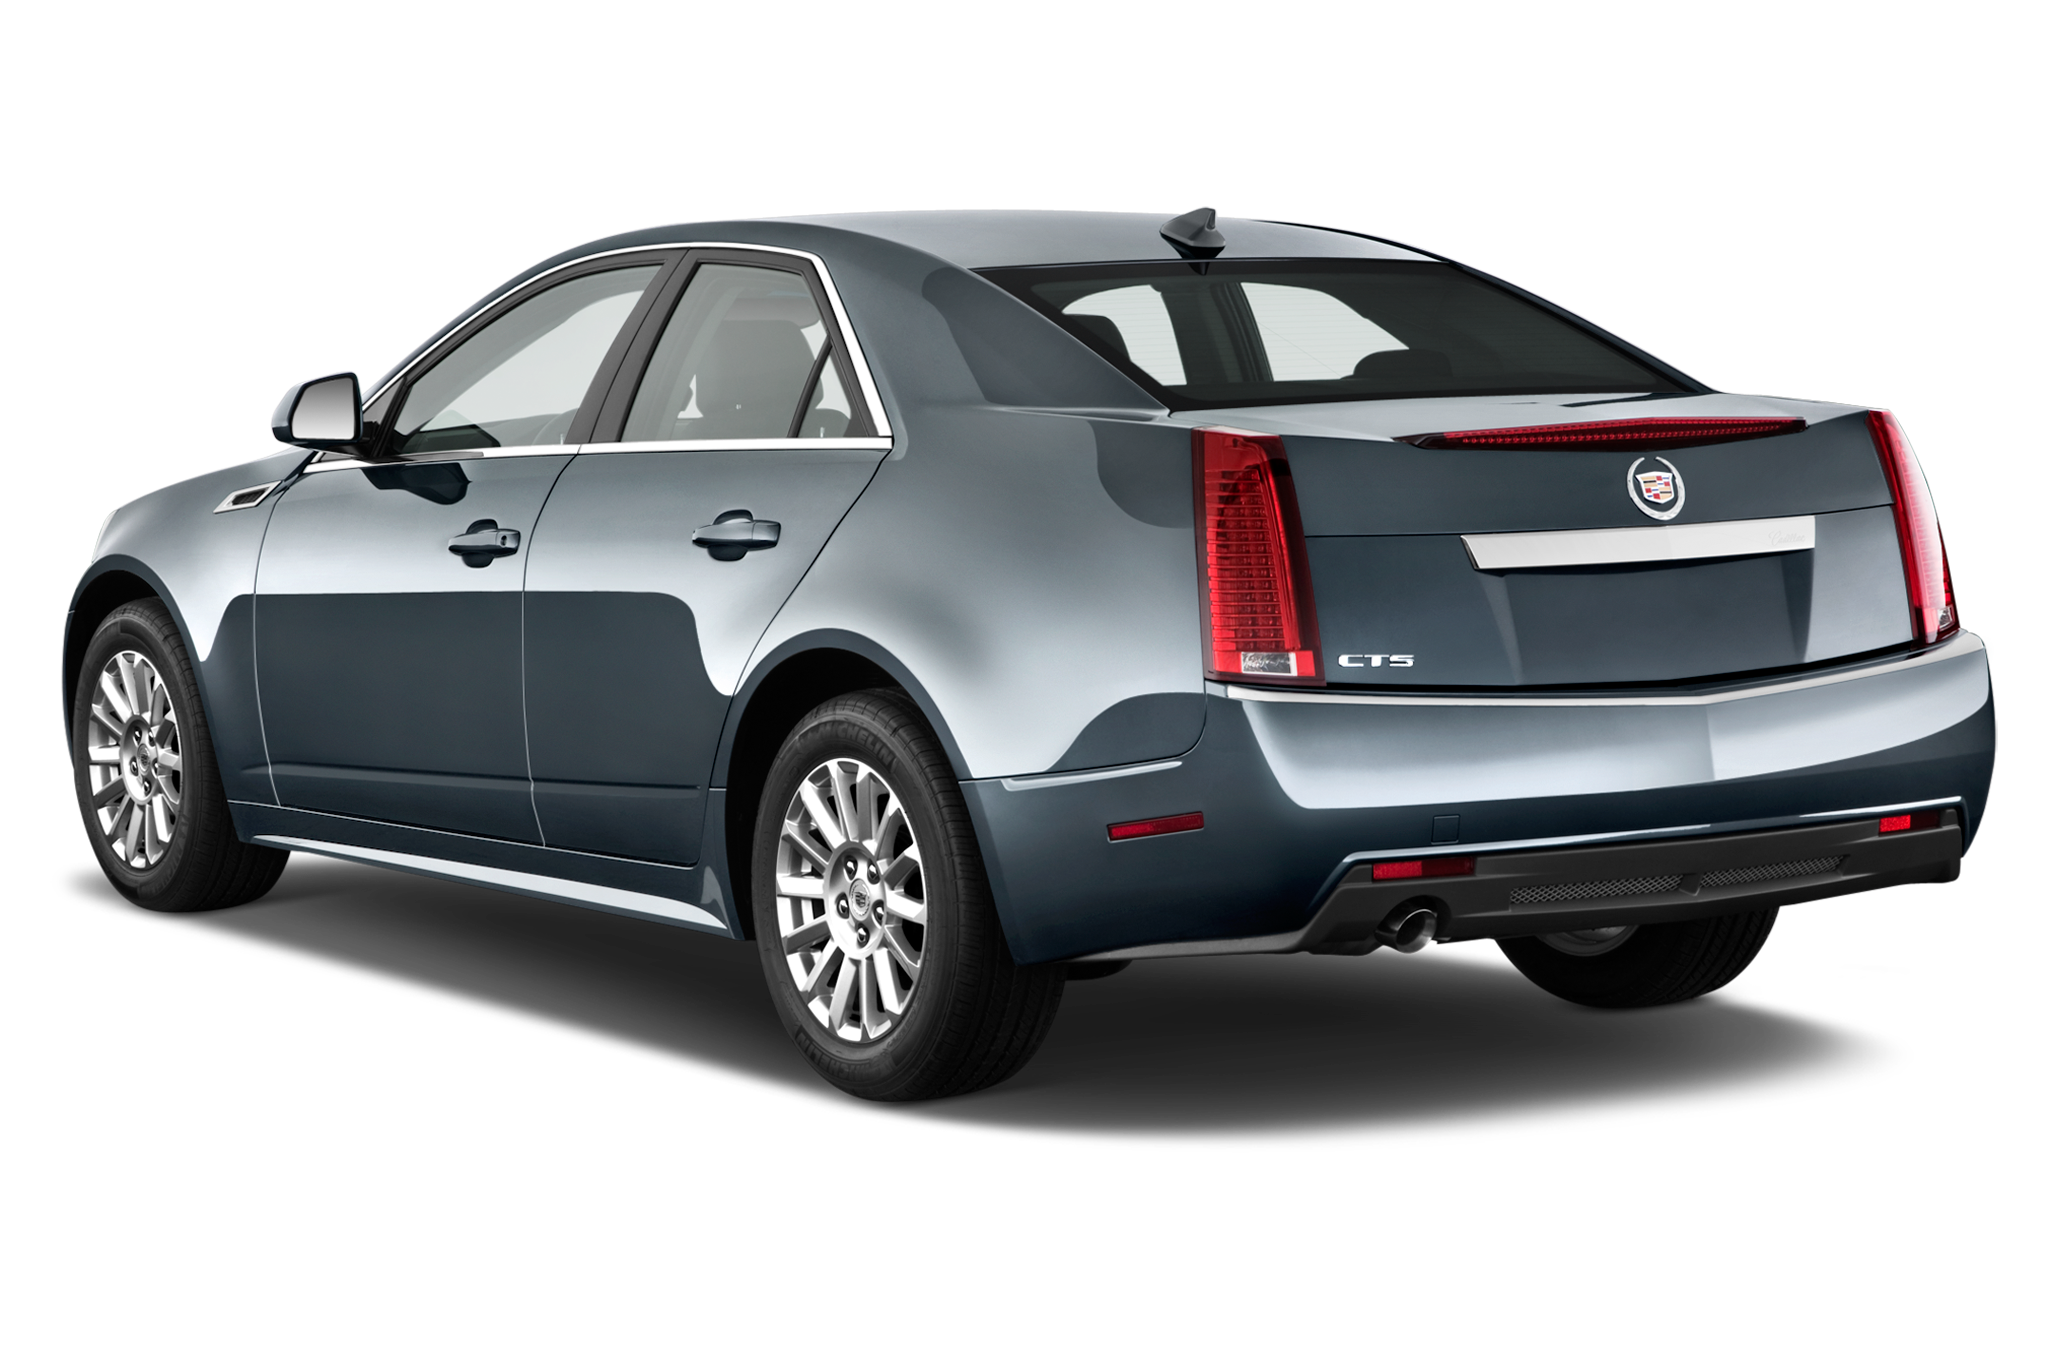 Report 2014 Cadillac Cts Will Look More Sophisticated